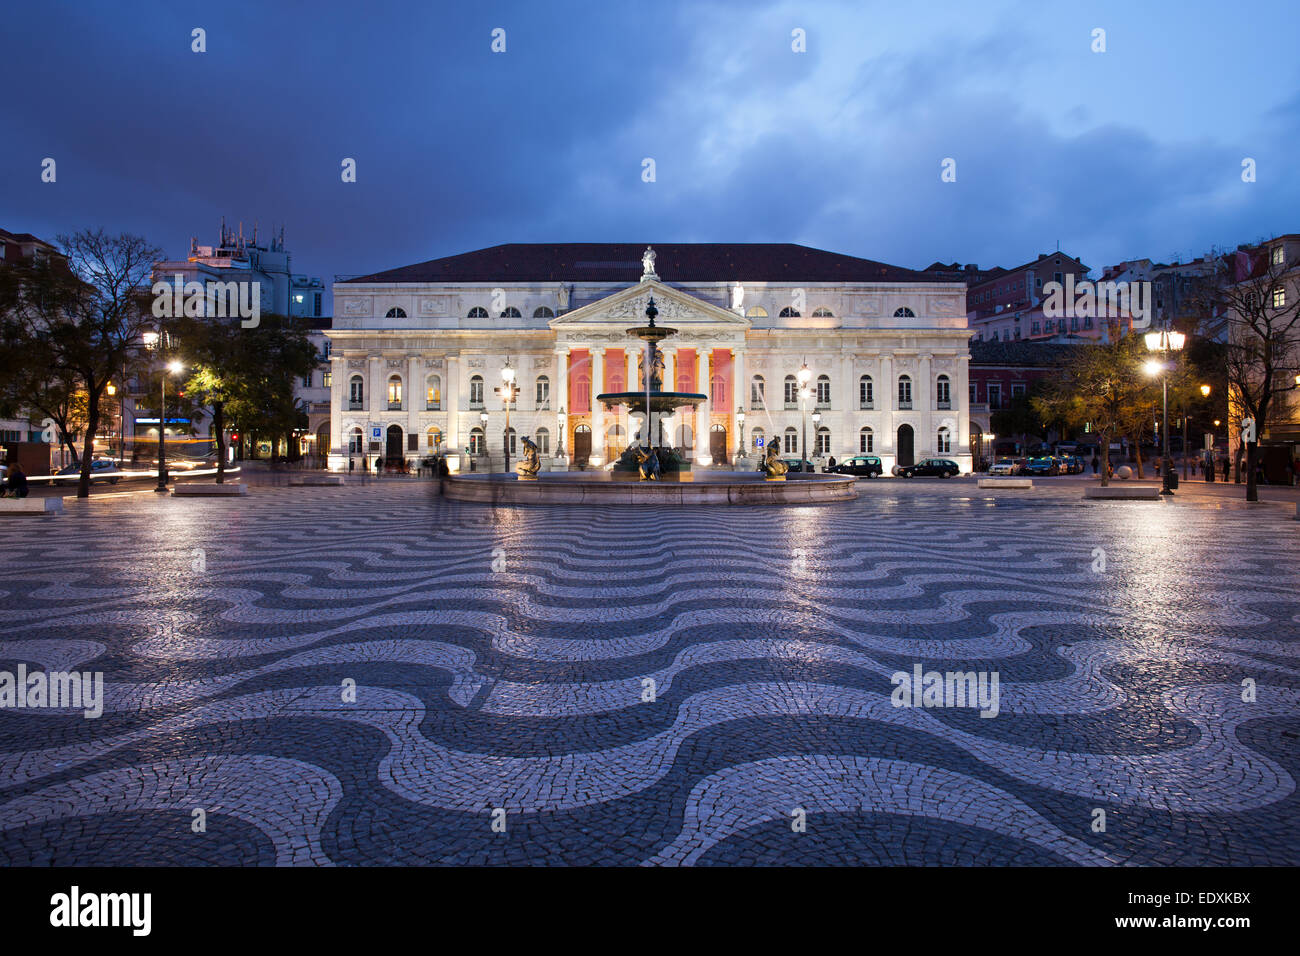 Dona Maria II National Theater on Rossio Square at night, Lisbon, Portugal. Stock Photo